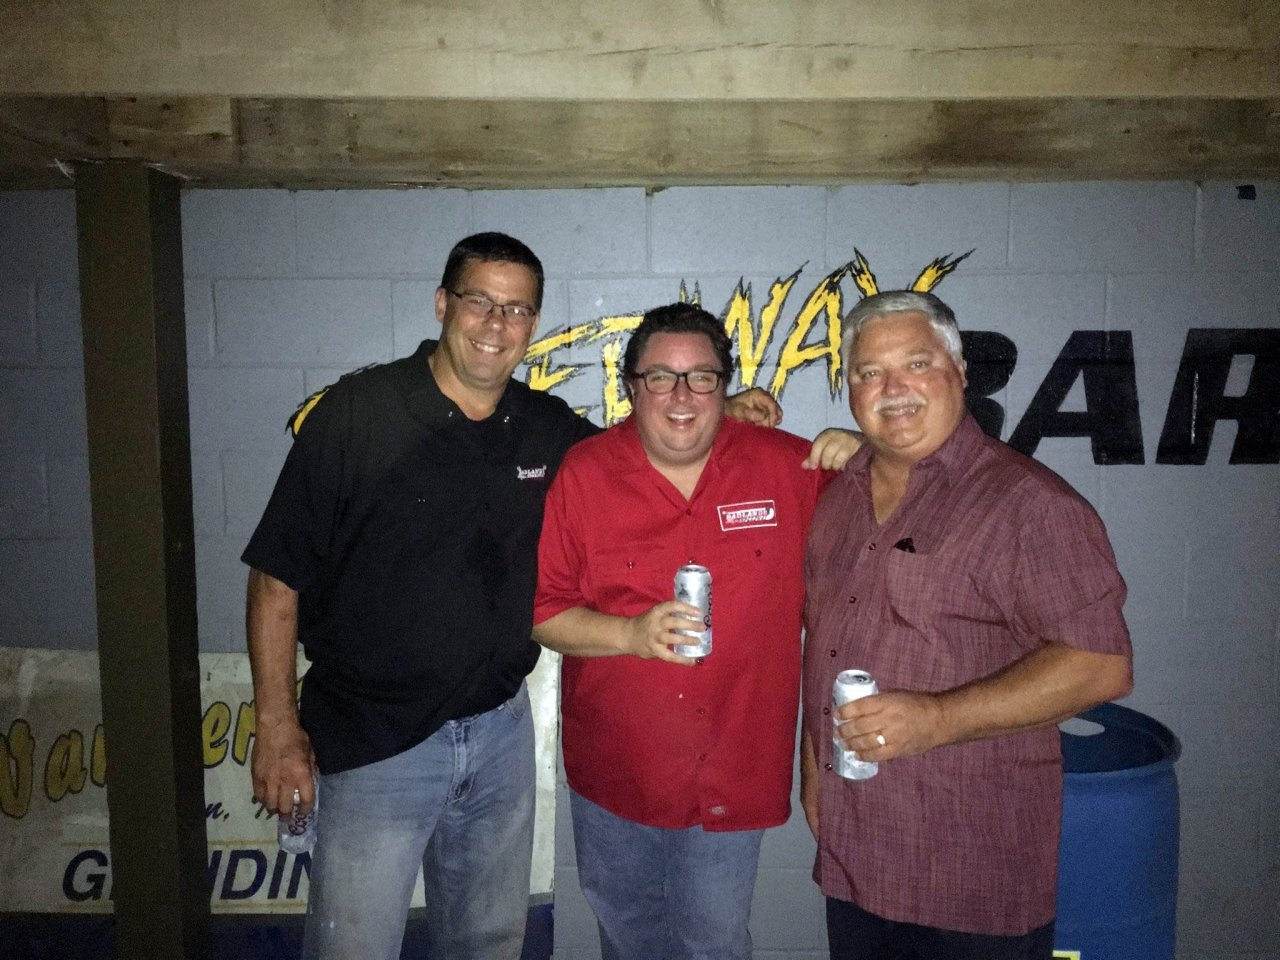 Jay Masur, Chuck Brennan and Steve Rubin at Huset's Speedway